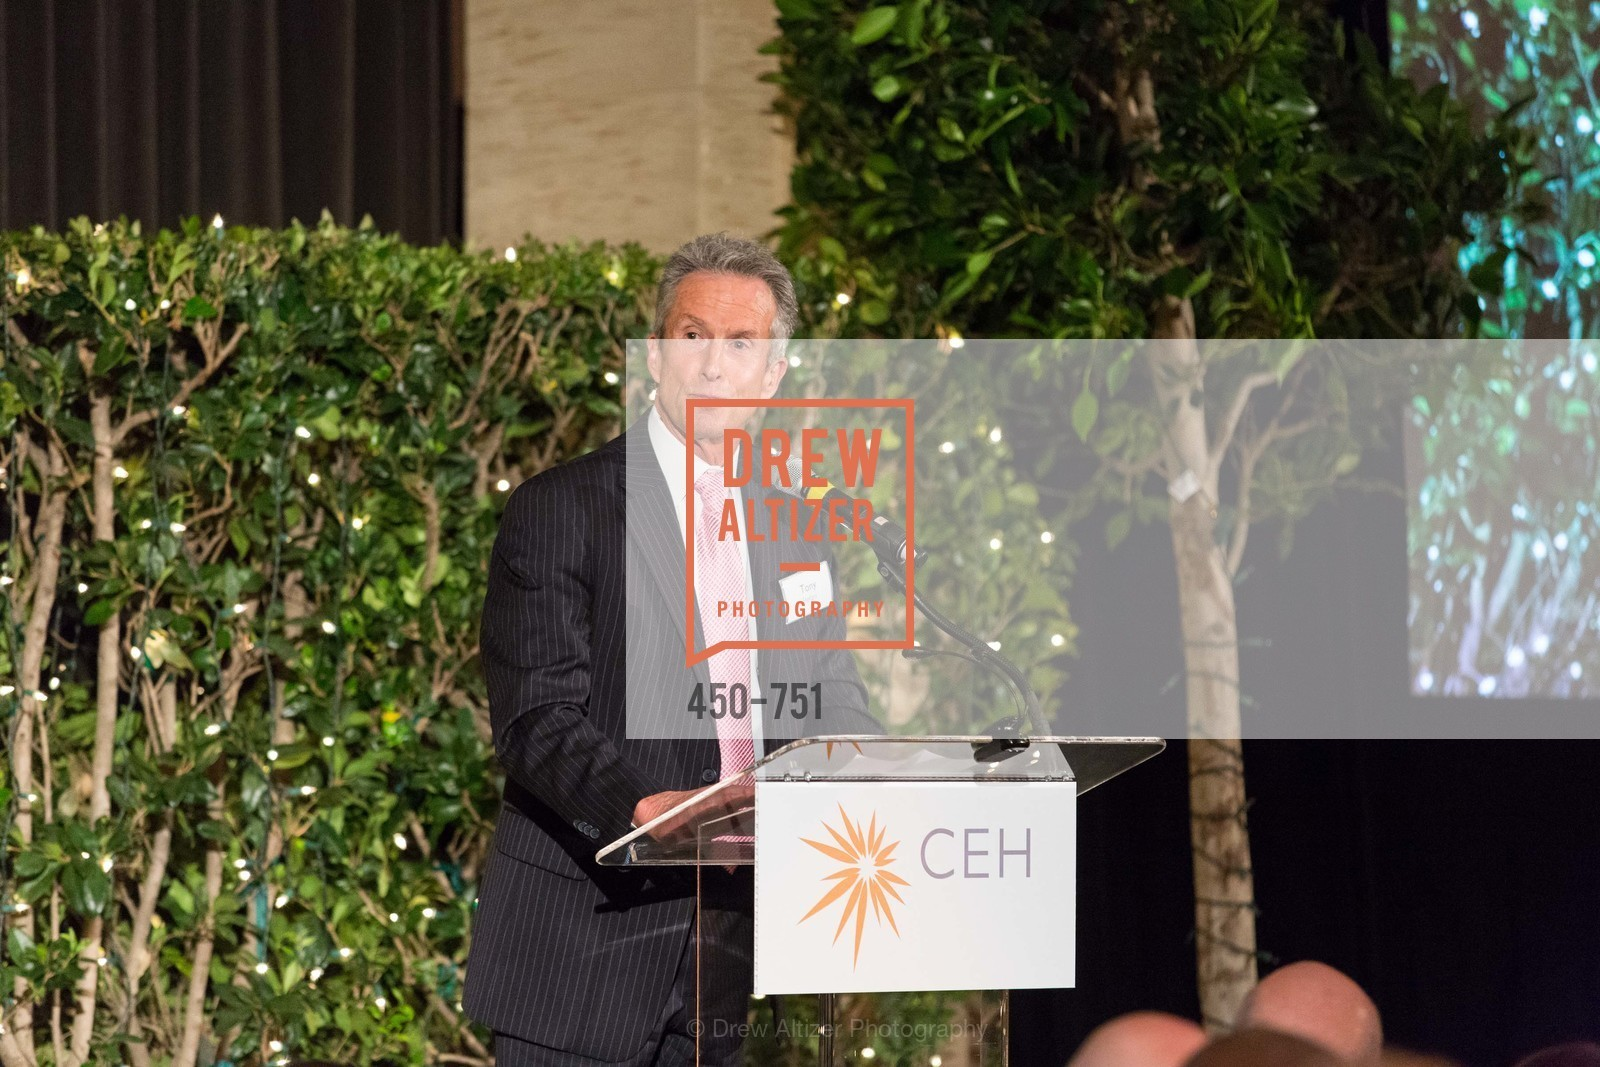 Tony Stefani, CENTER FOR ENVIRONMENTAL HEALTH (CEH) 2015 Gala, US, May 28th, 2015,Drew Altizer, Drew Altizer Photography, full-service agency, private events, San Francisco photographer, photographer california